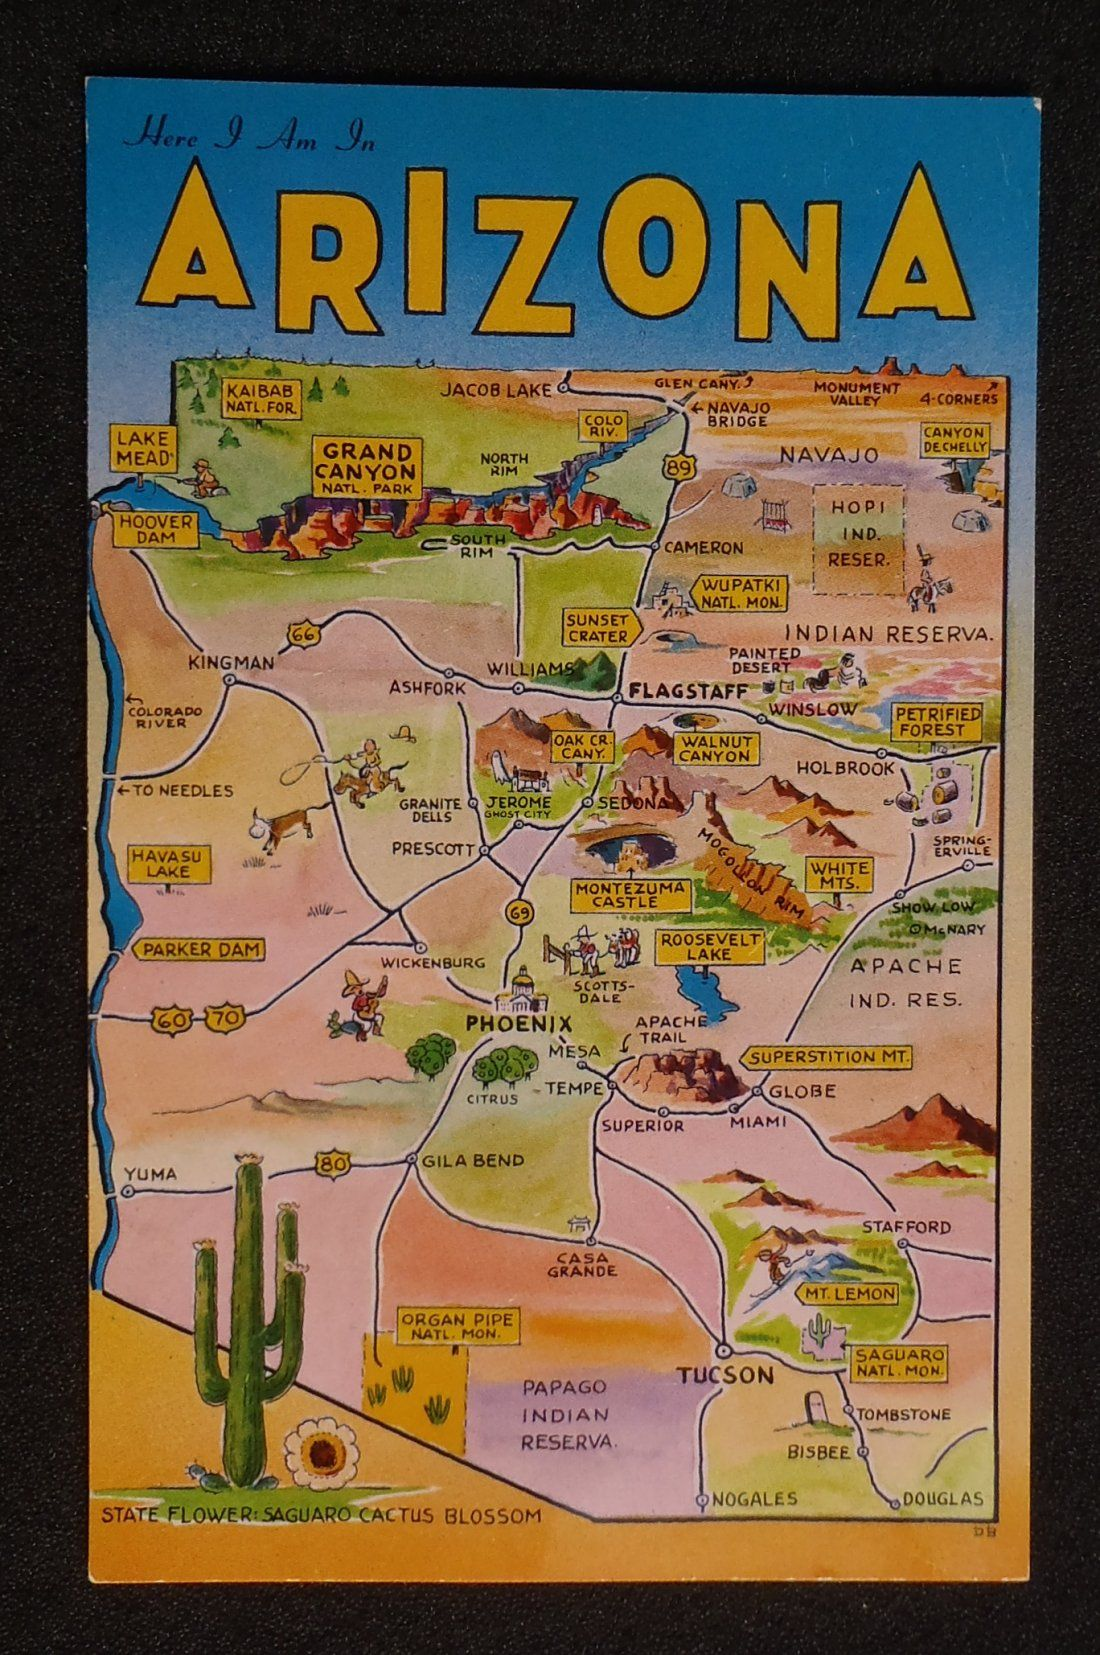 Map Of Arizona Landmarks.Details About 1960s Arizona State Map Greetings Small Views